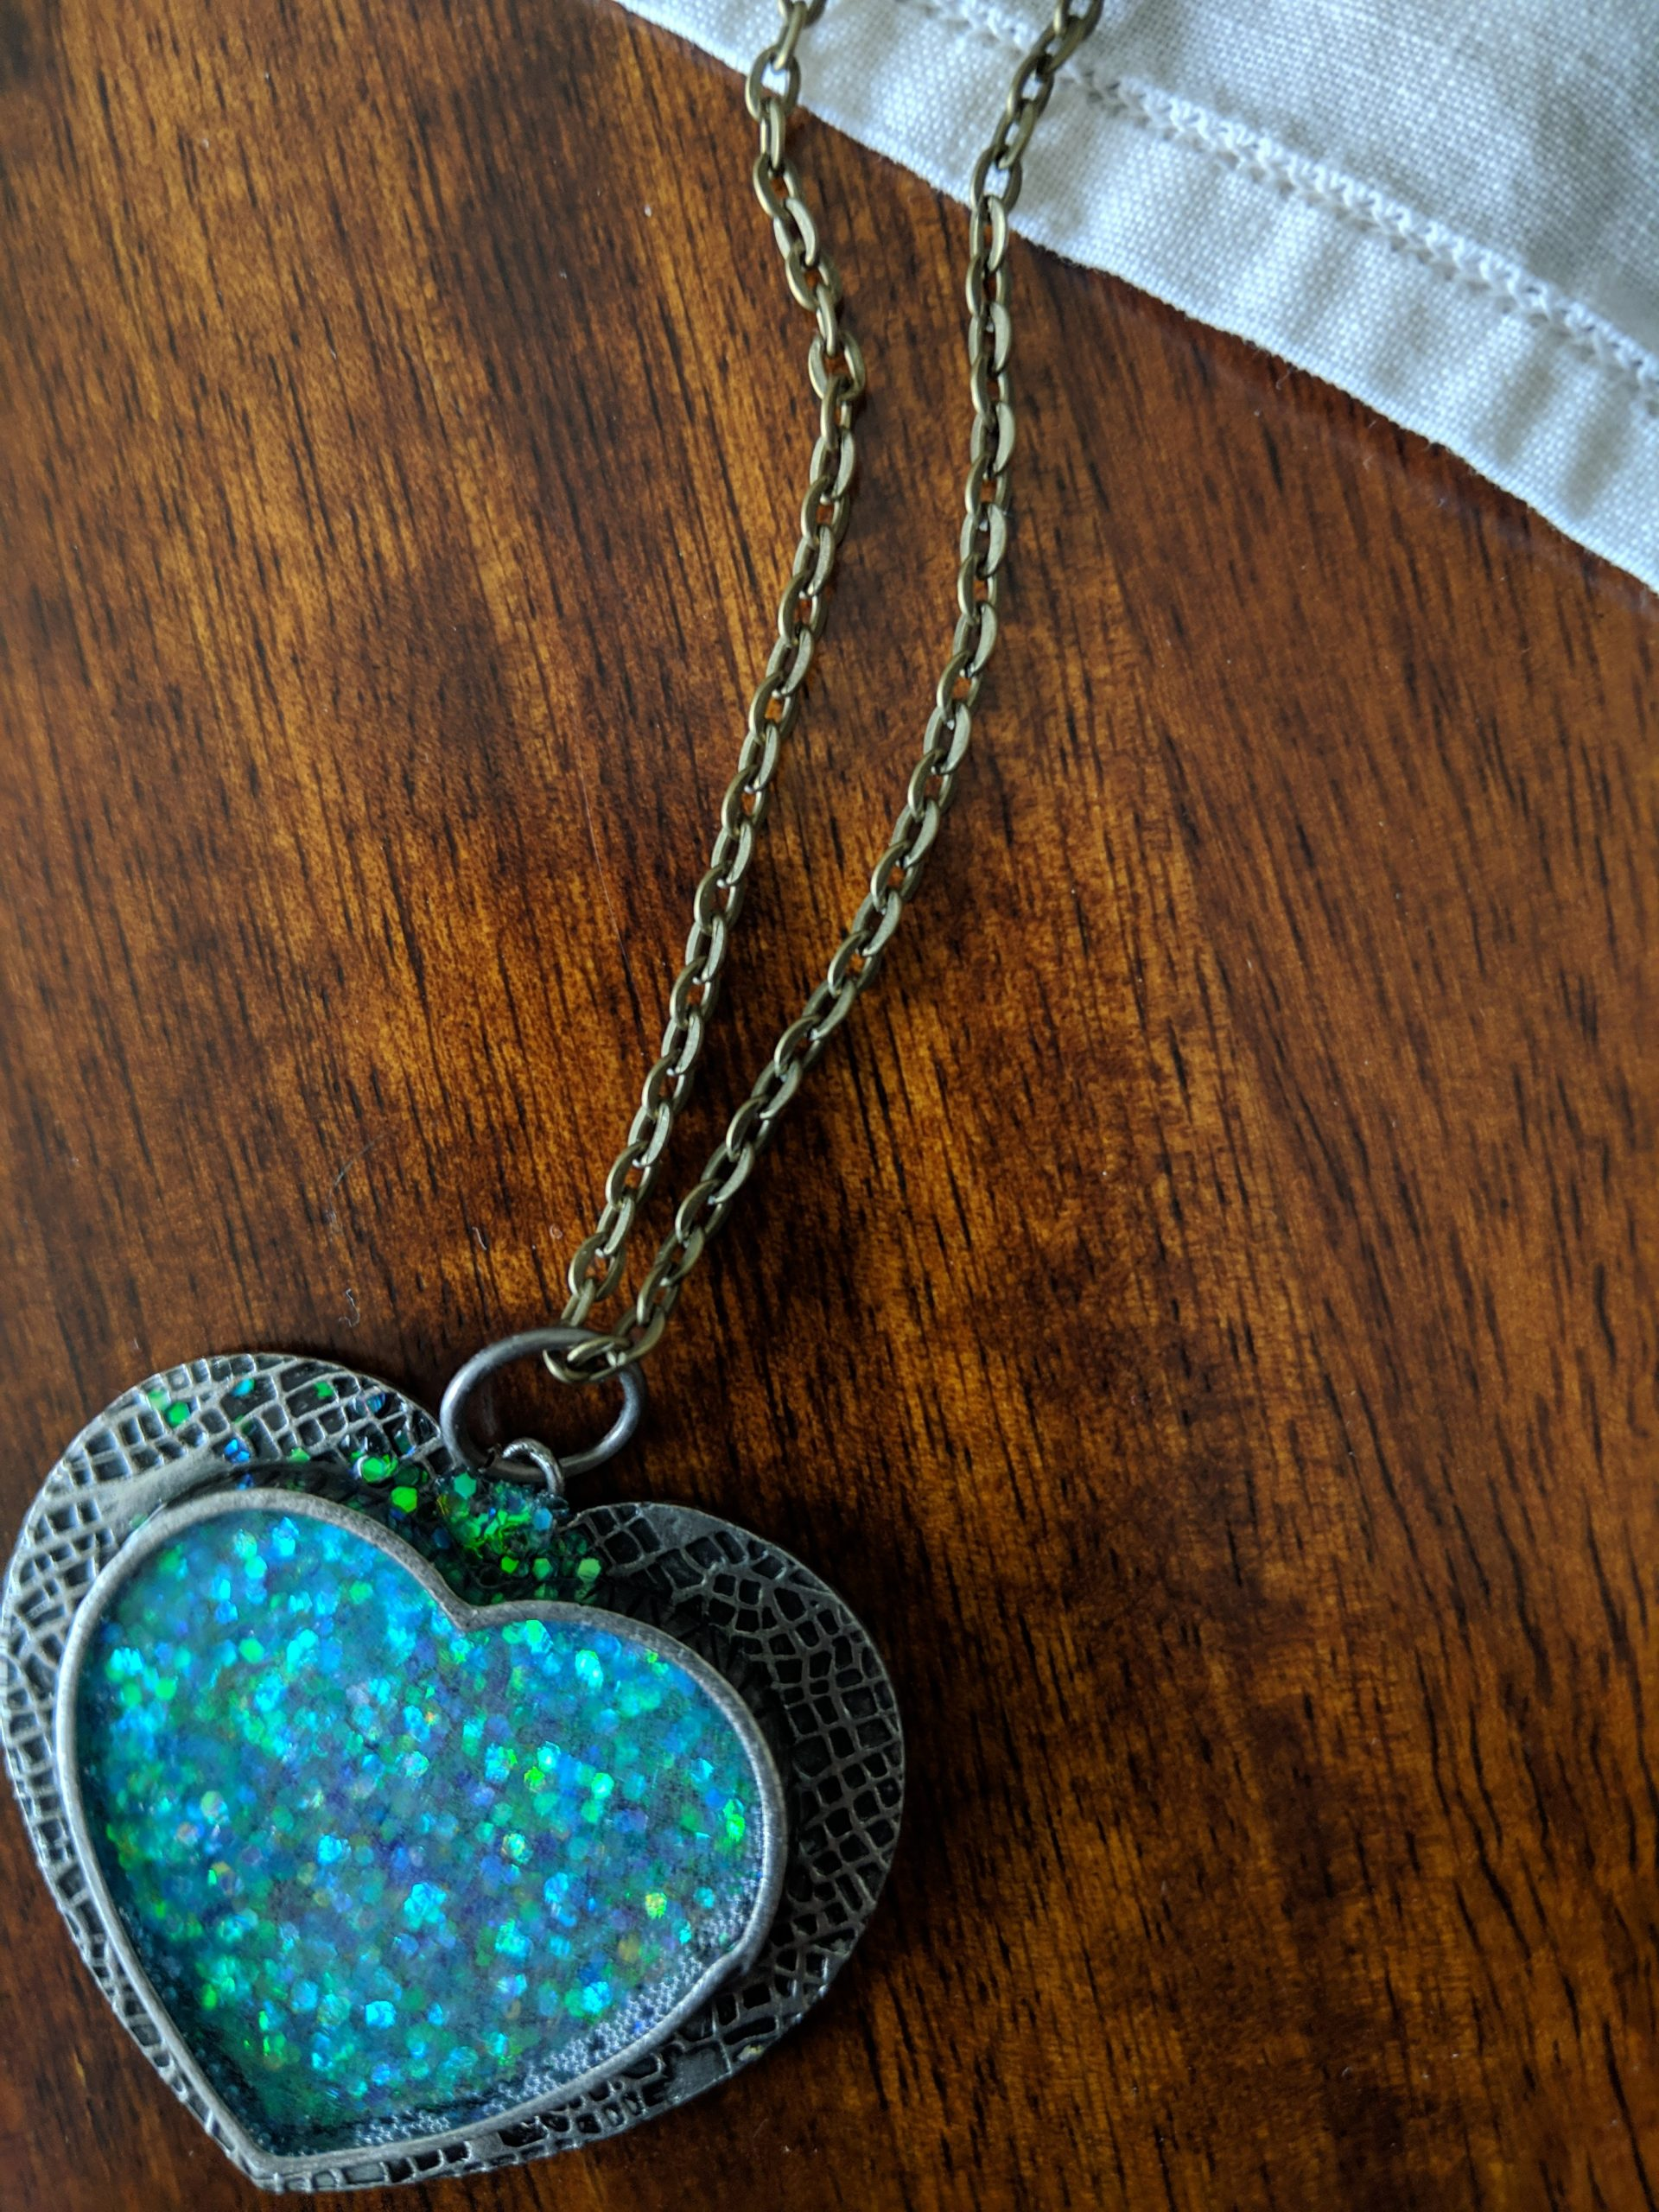 How to Get Started with Resin Jewelry